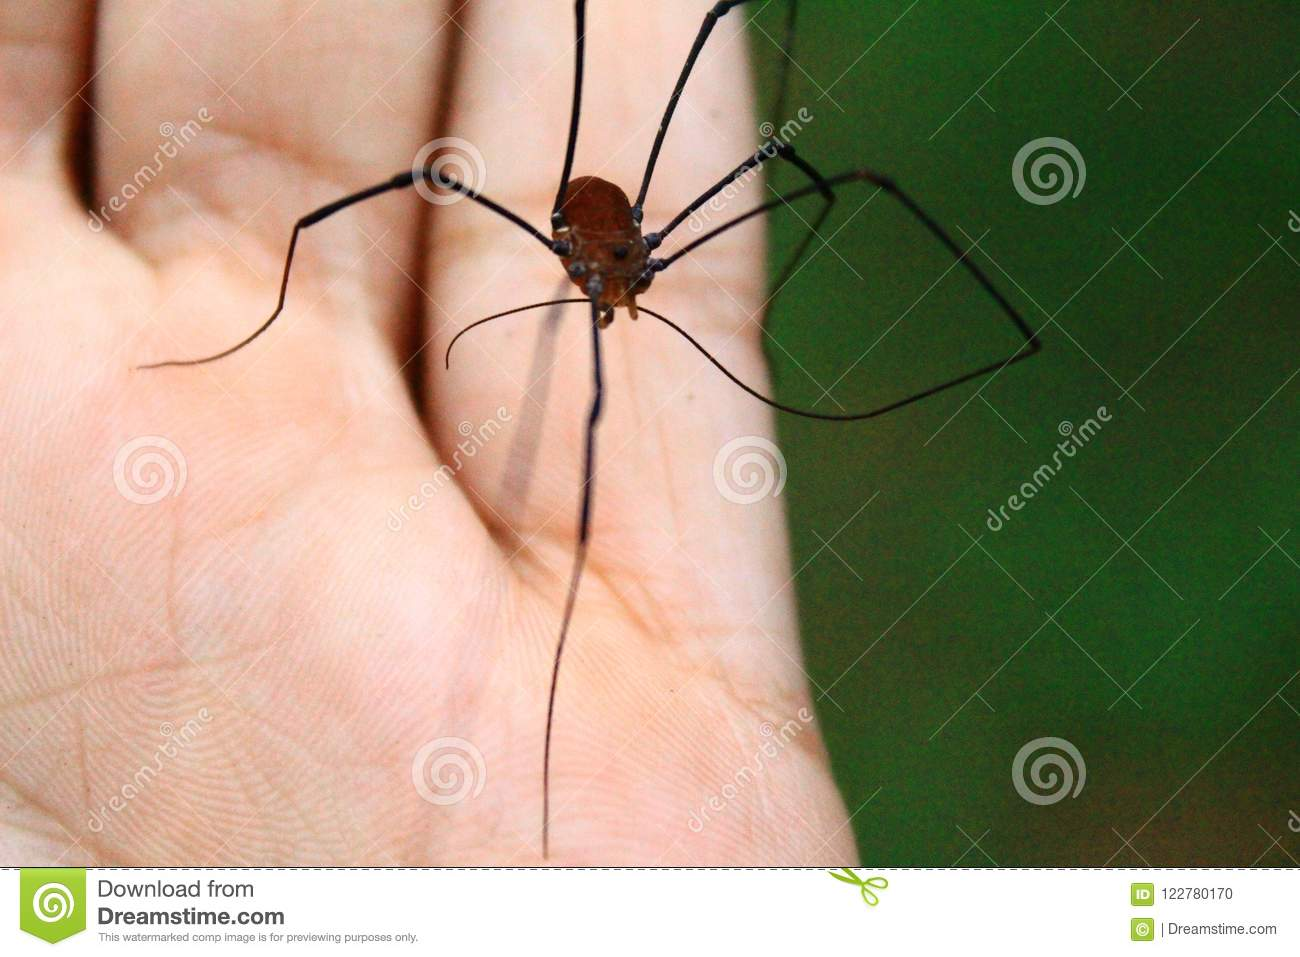 daddy long legs free download